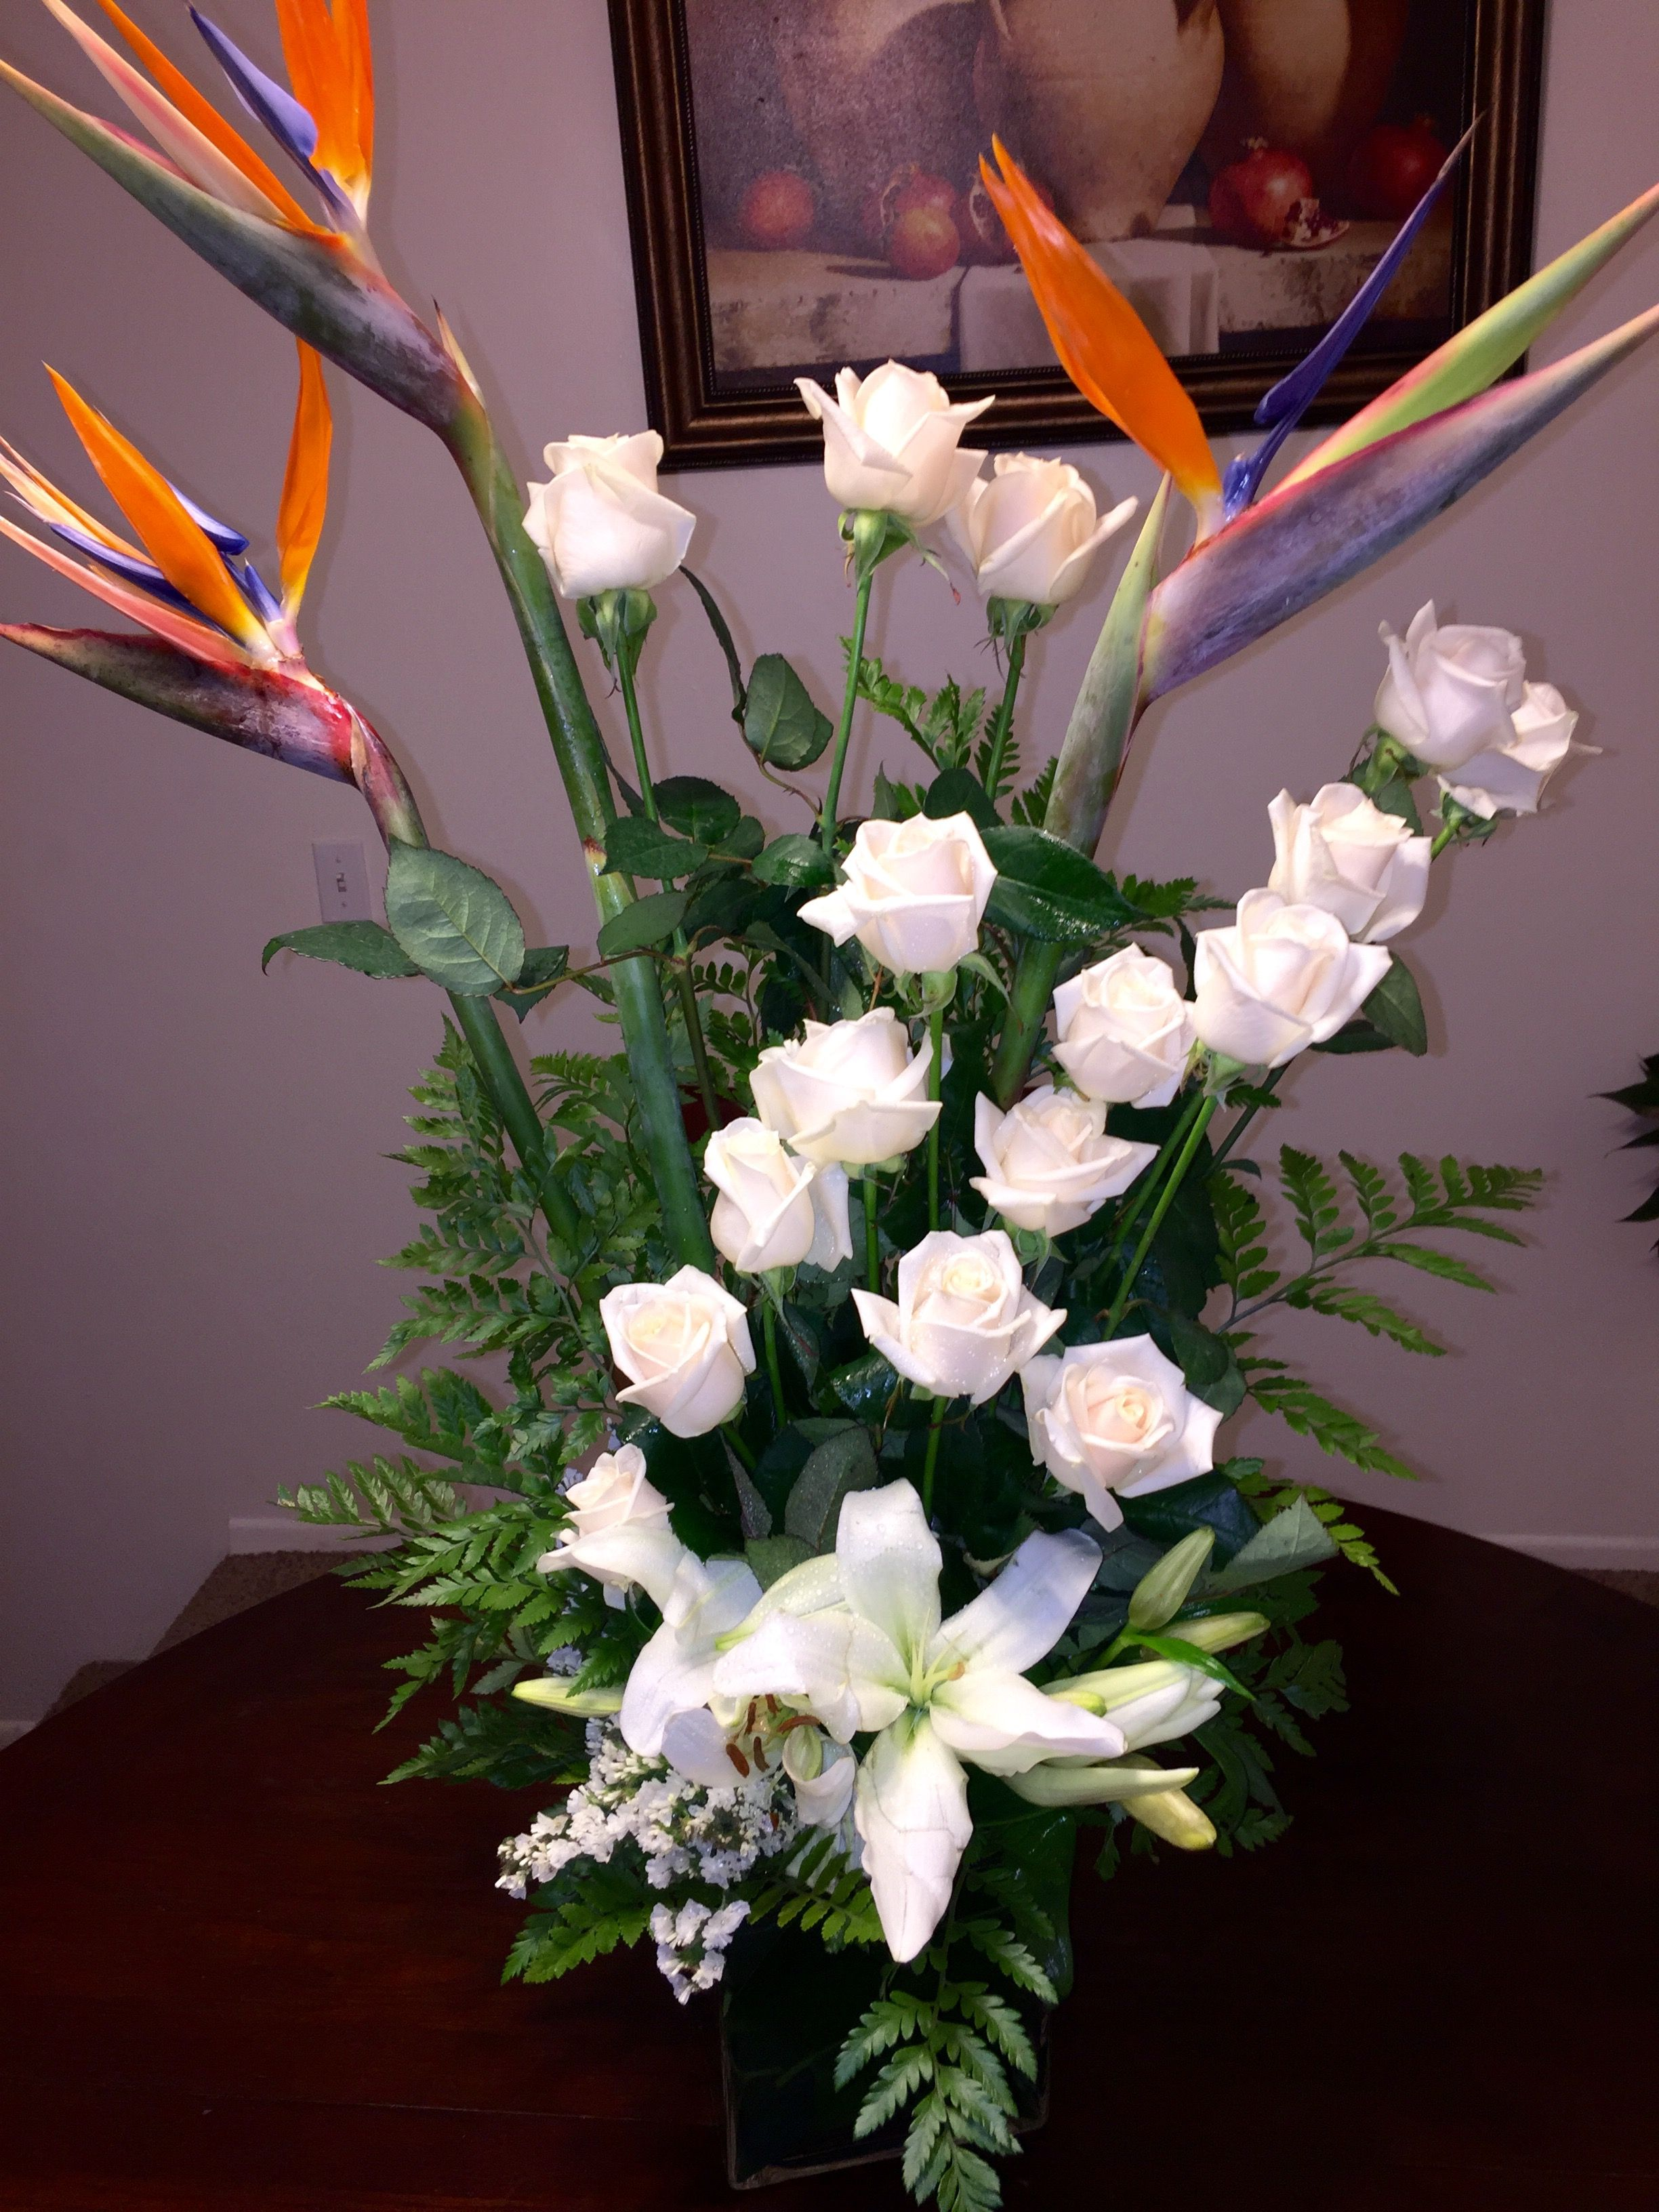 White Flower Arrangement With Bird Of Paradise And White Roses